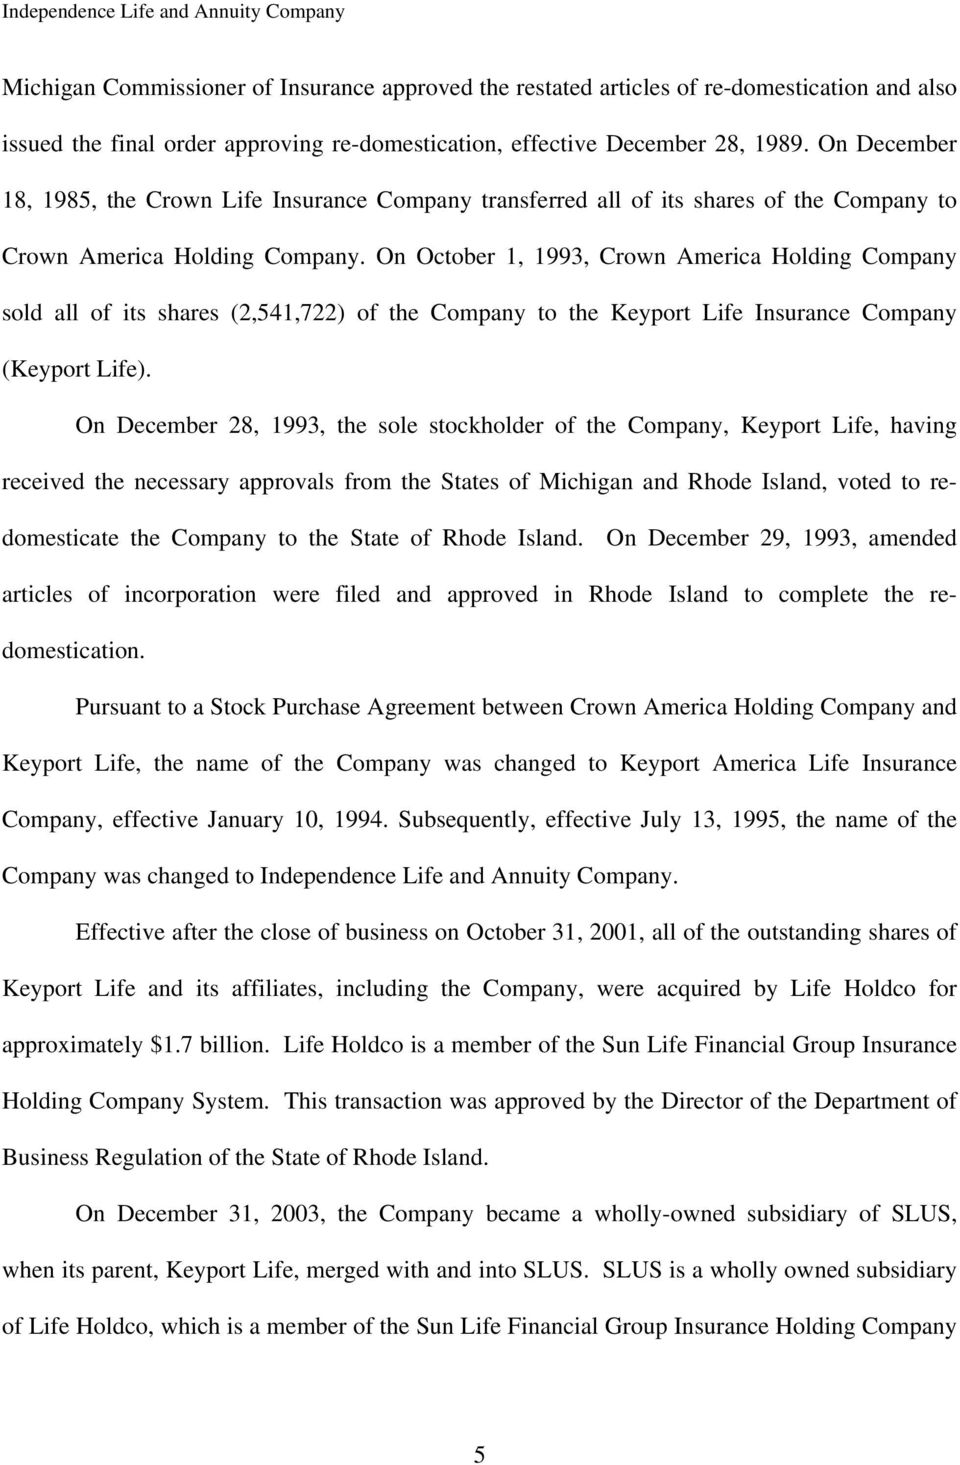 On October 1, 1993, Crown America Holding Company sold all of its shares (2,541,722) of the Company to the Keyport Life Insurance Company (Keyport Life).